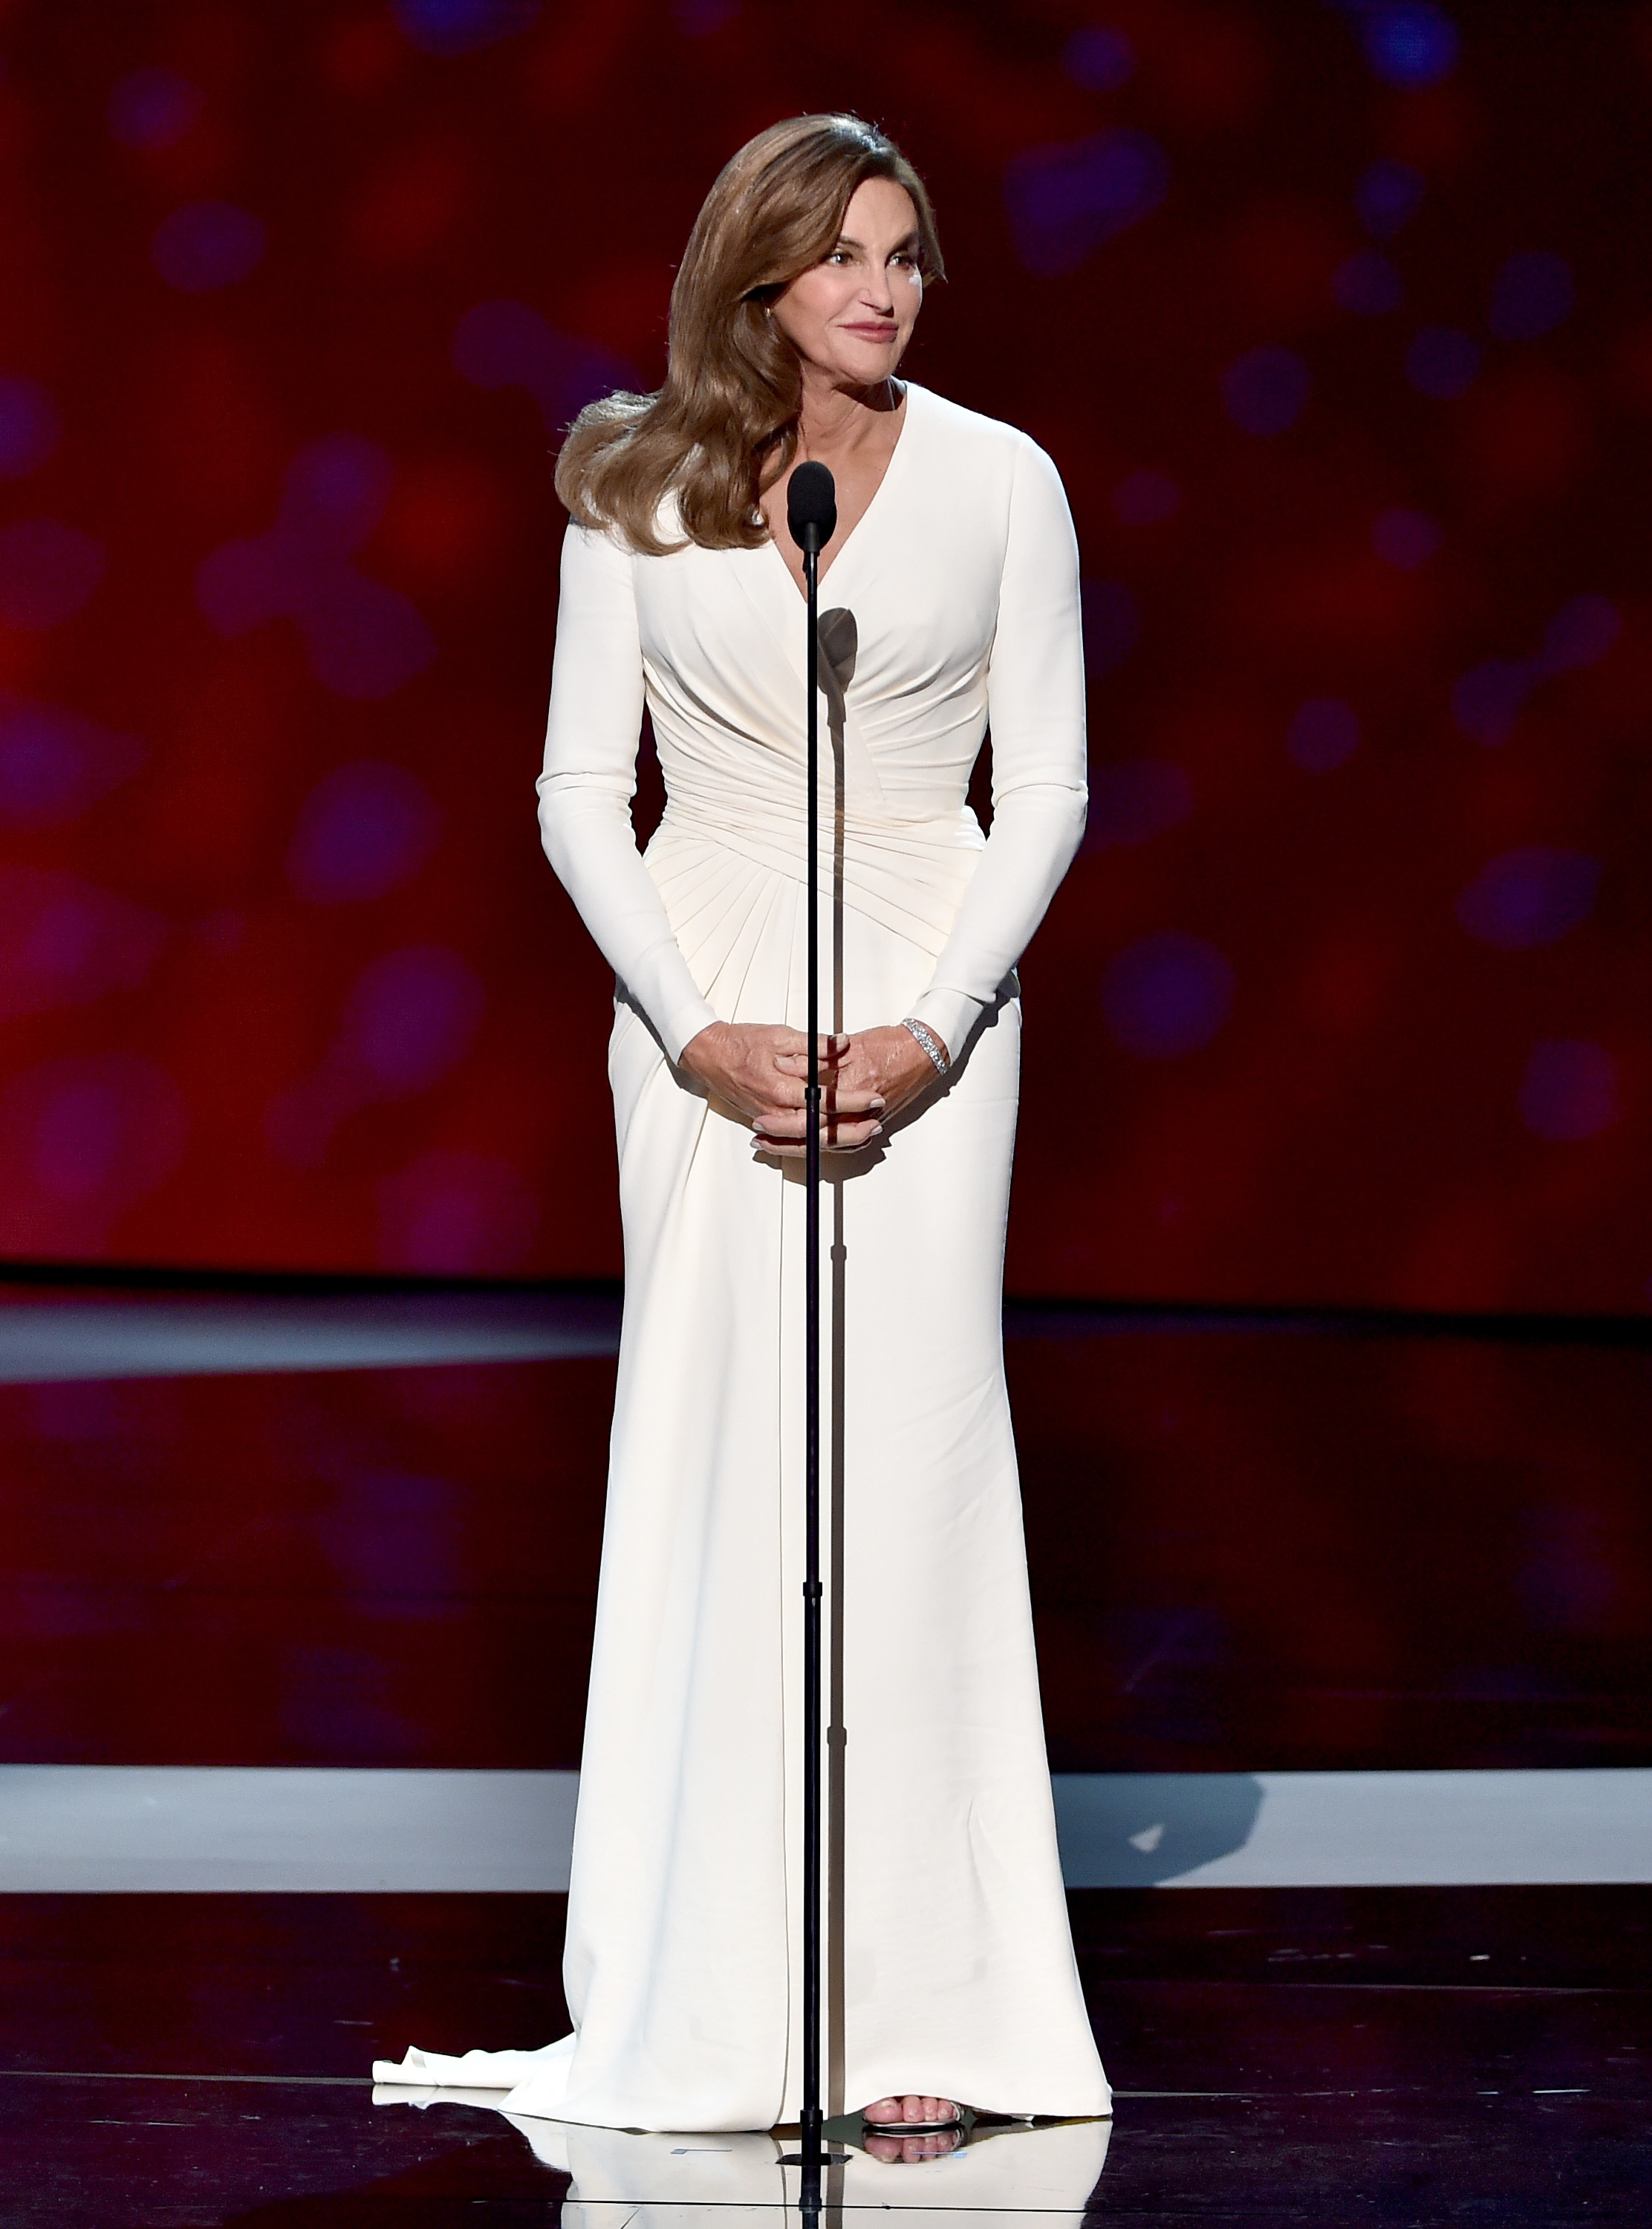 Caitlyn Jenner's ESPY Awards look: All the details